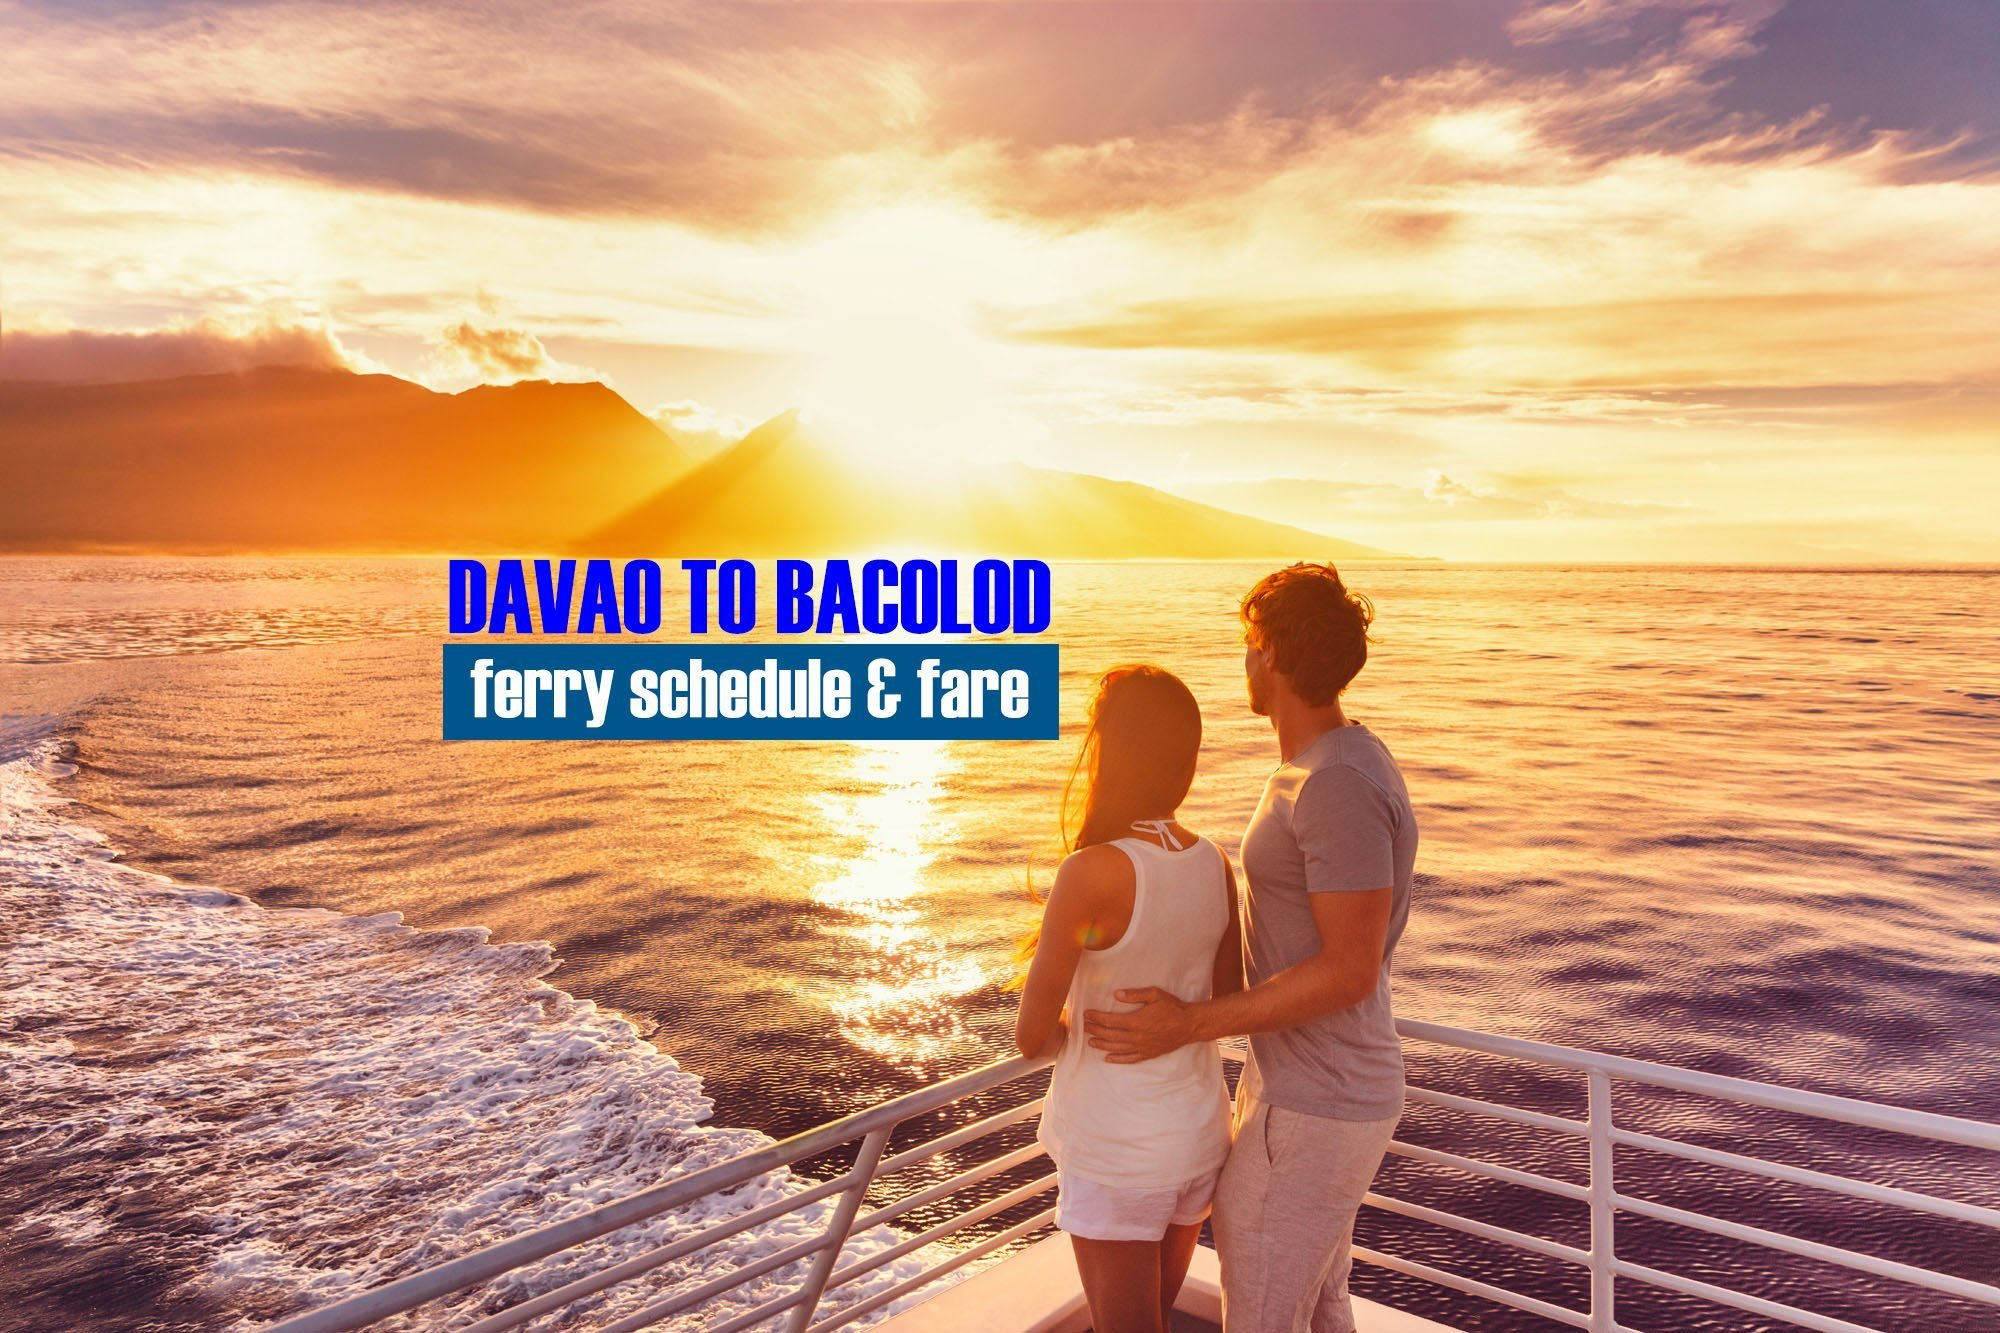 Davao to Bacolod: 2019 Boat Schedule and Fare